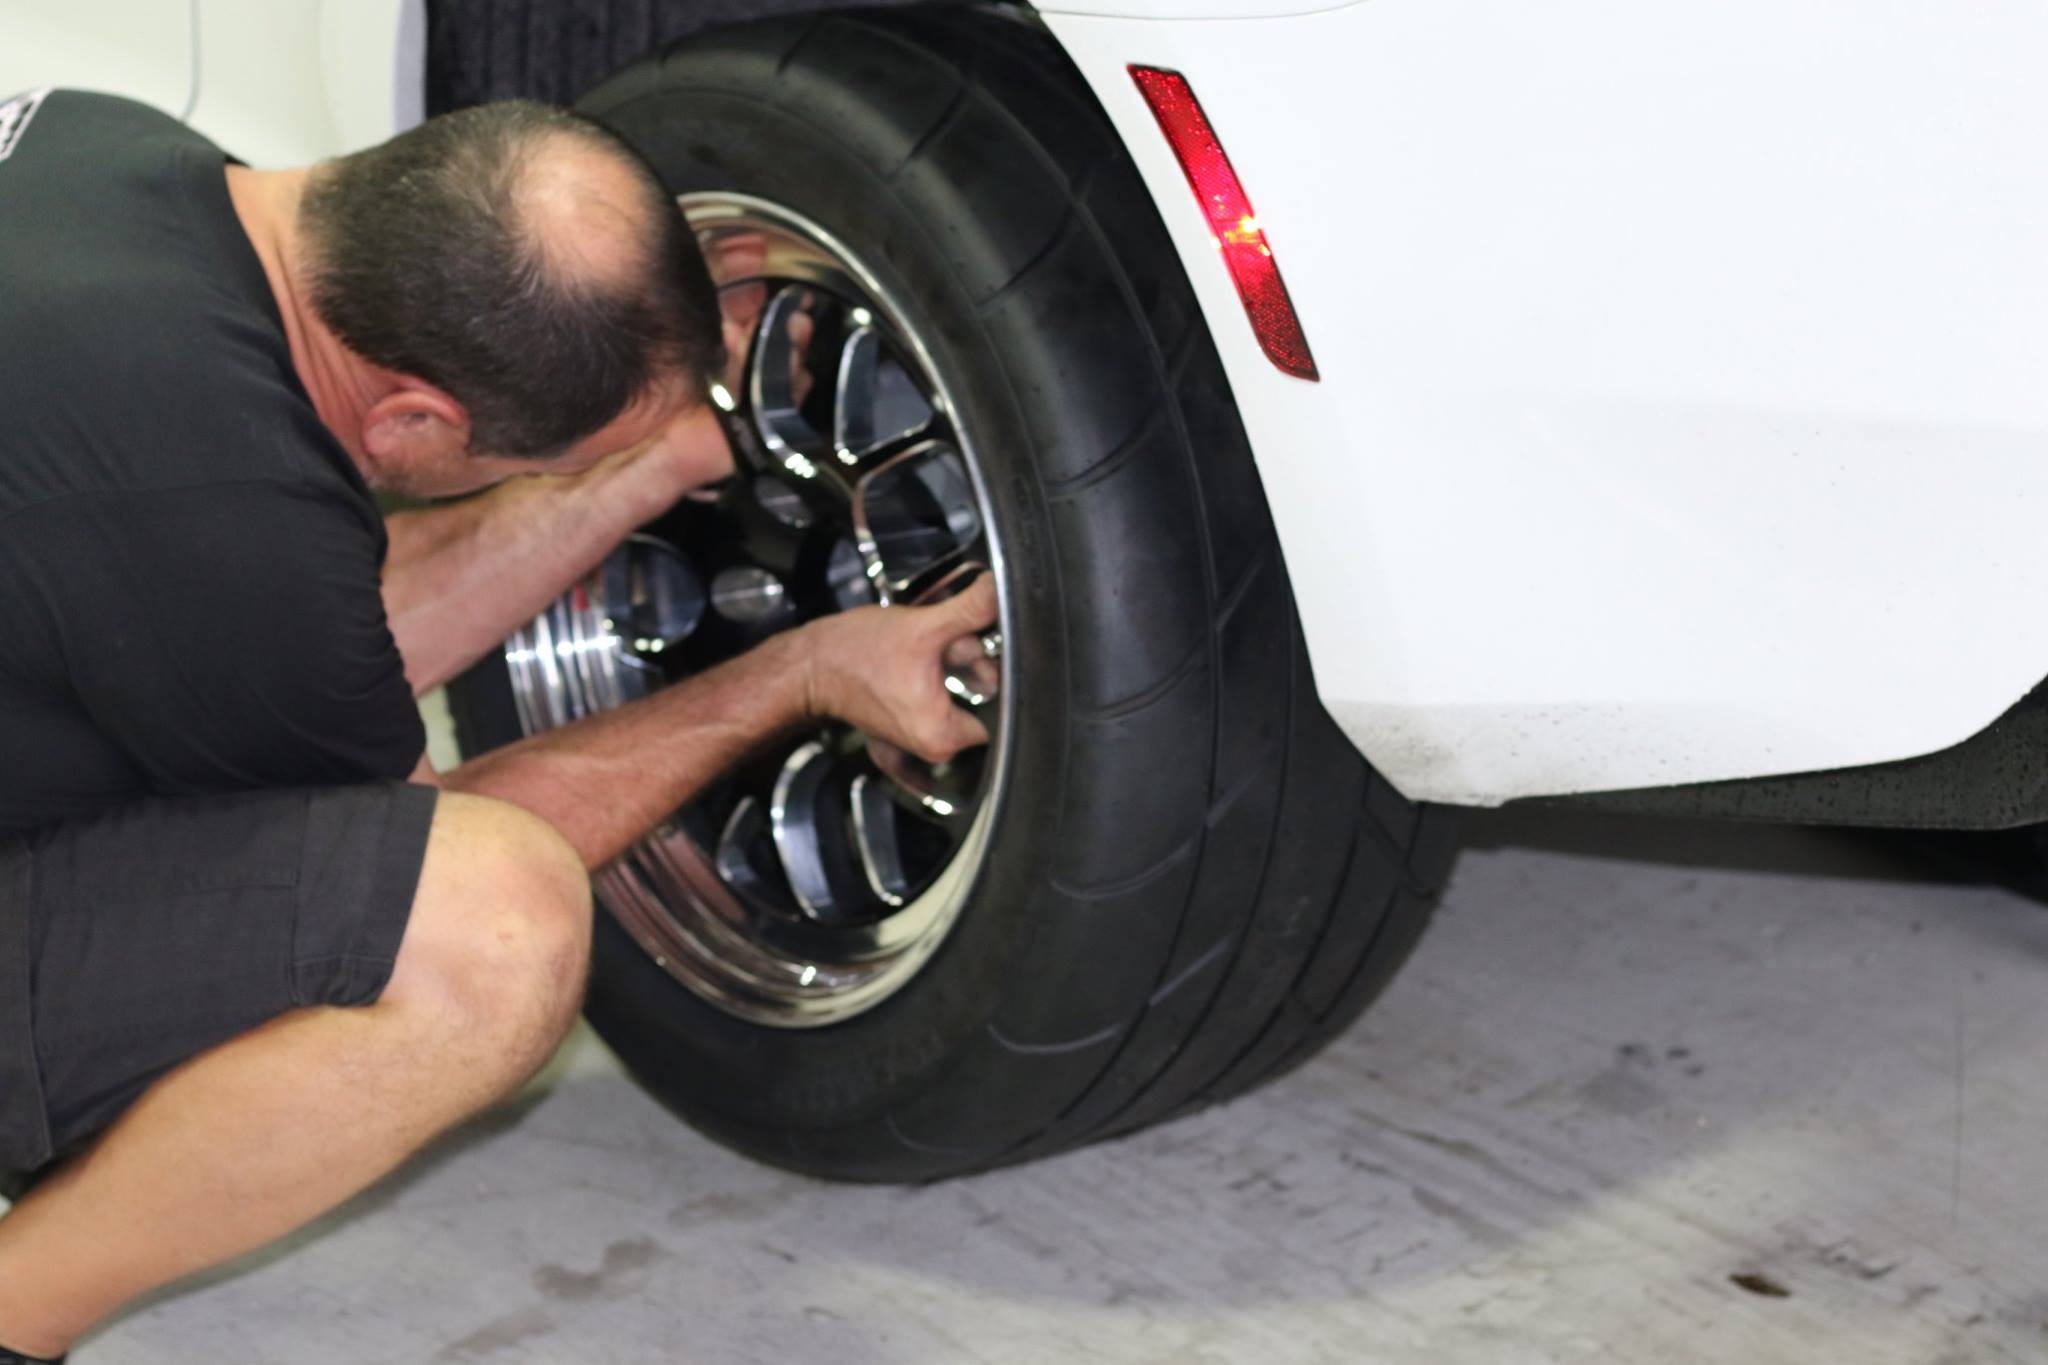 2016 Camaro Ss Gets Ecu Tune Drag Radials From Redline Motorsports One Day After Delivery